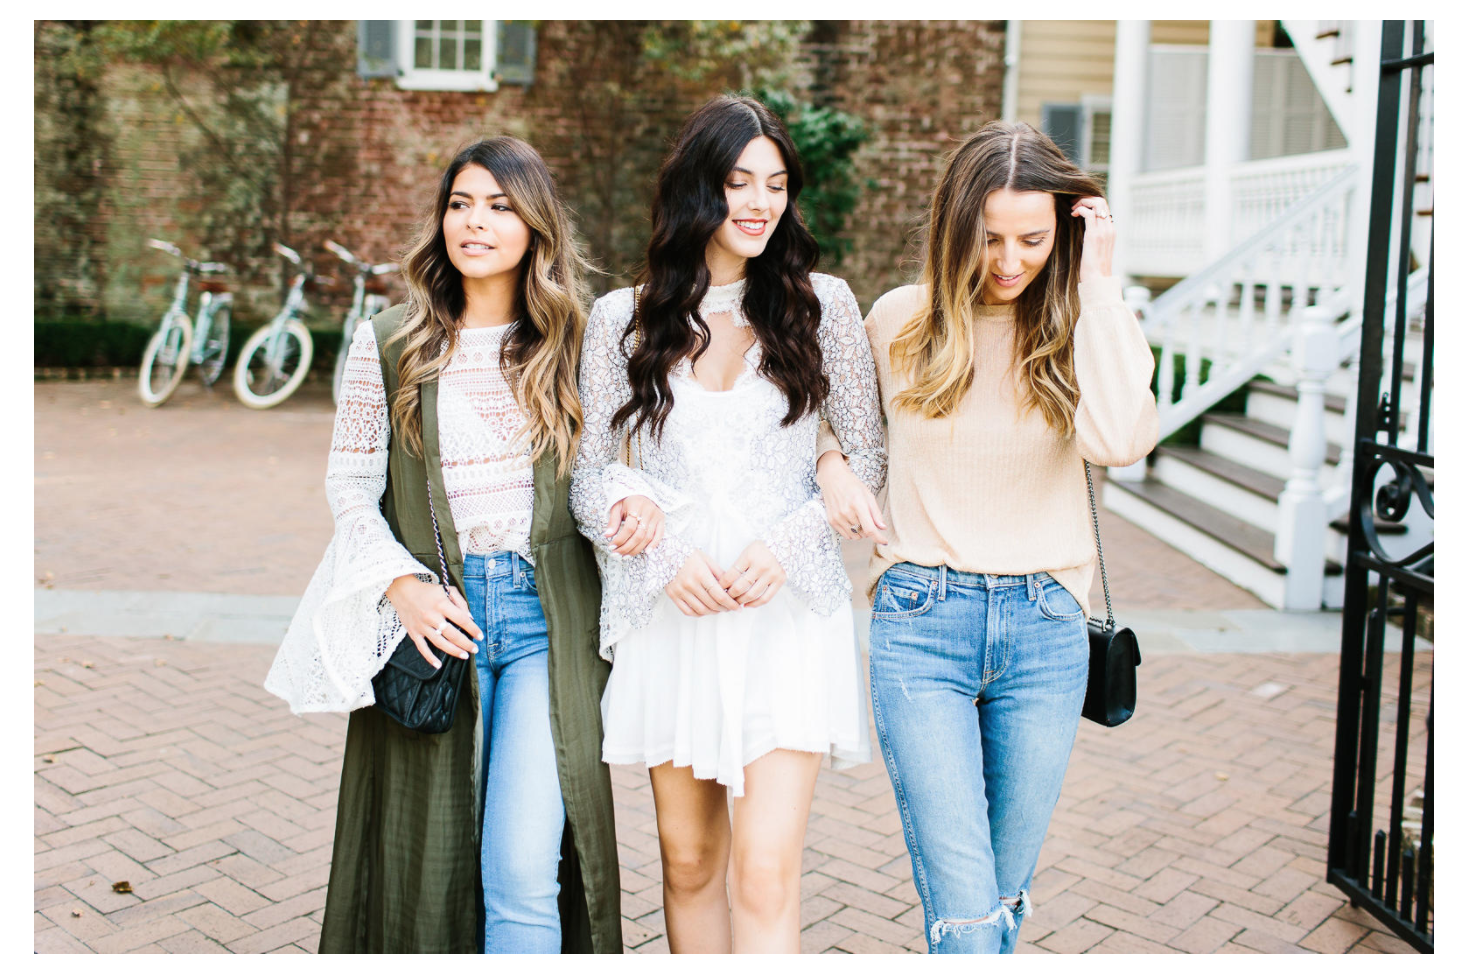 5 Fashion Brands Leveraging Influencer Marketing in Style | by Kamiu Lee |  INFLUENCE